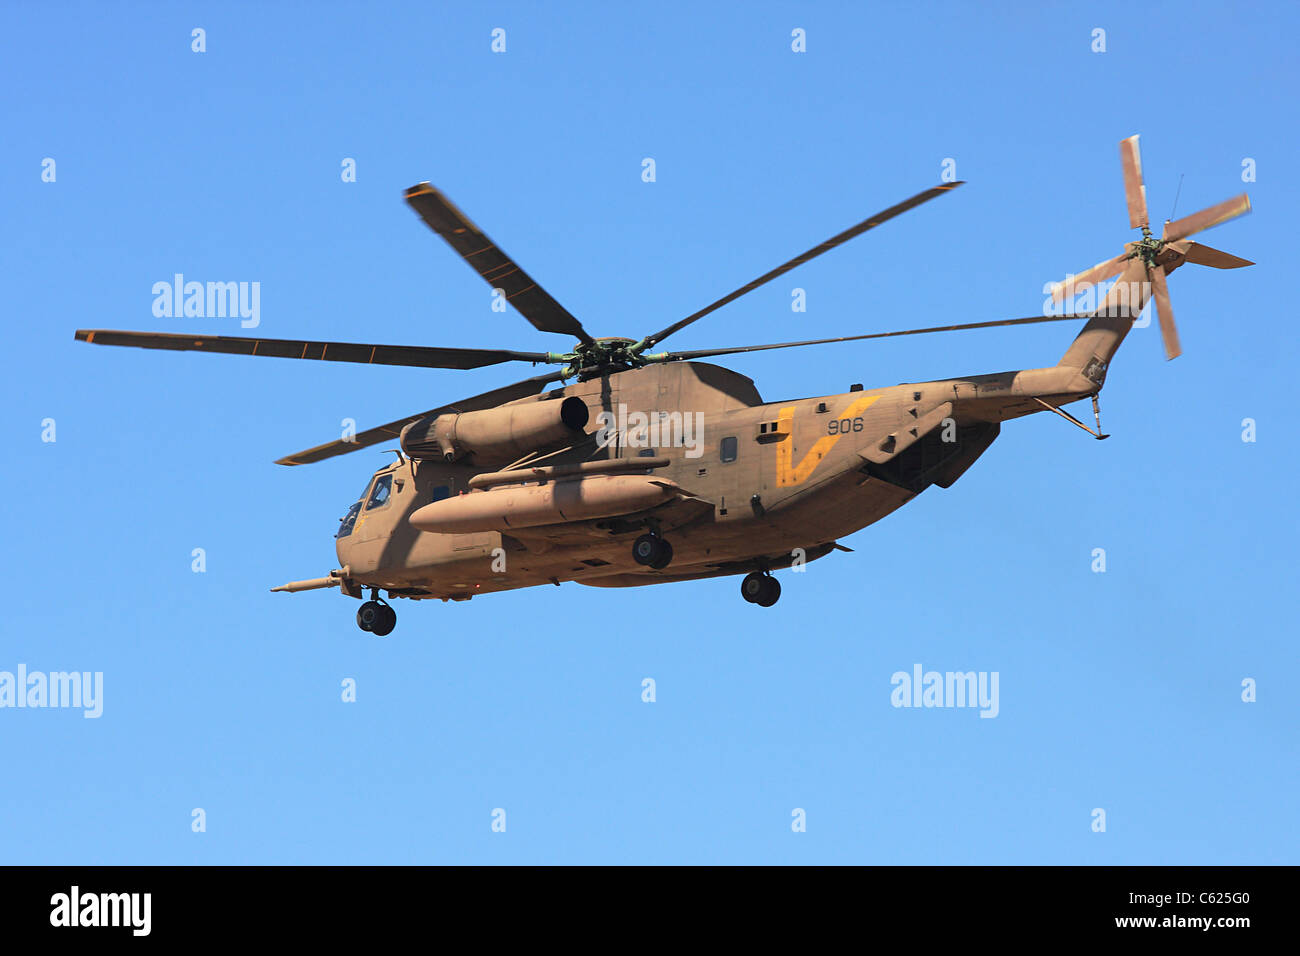 Sikorsky CH-53 of the Israel Defence Forces few moments after take off - Stock Image